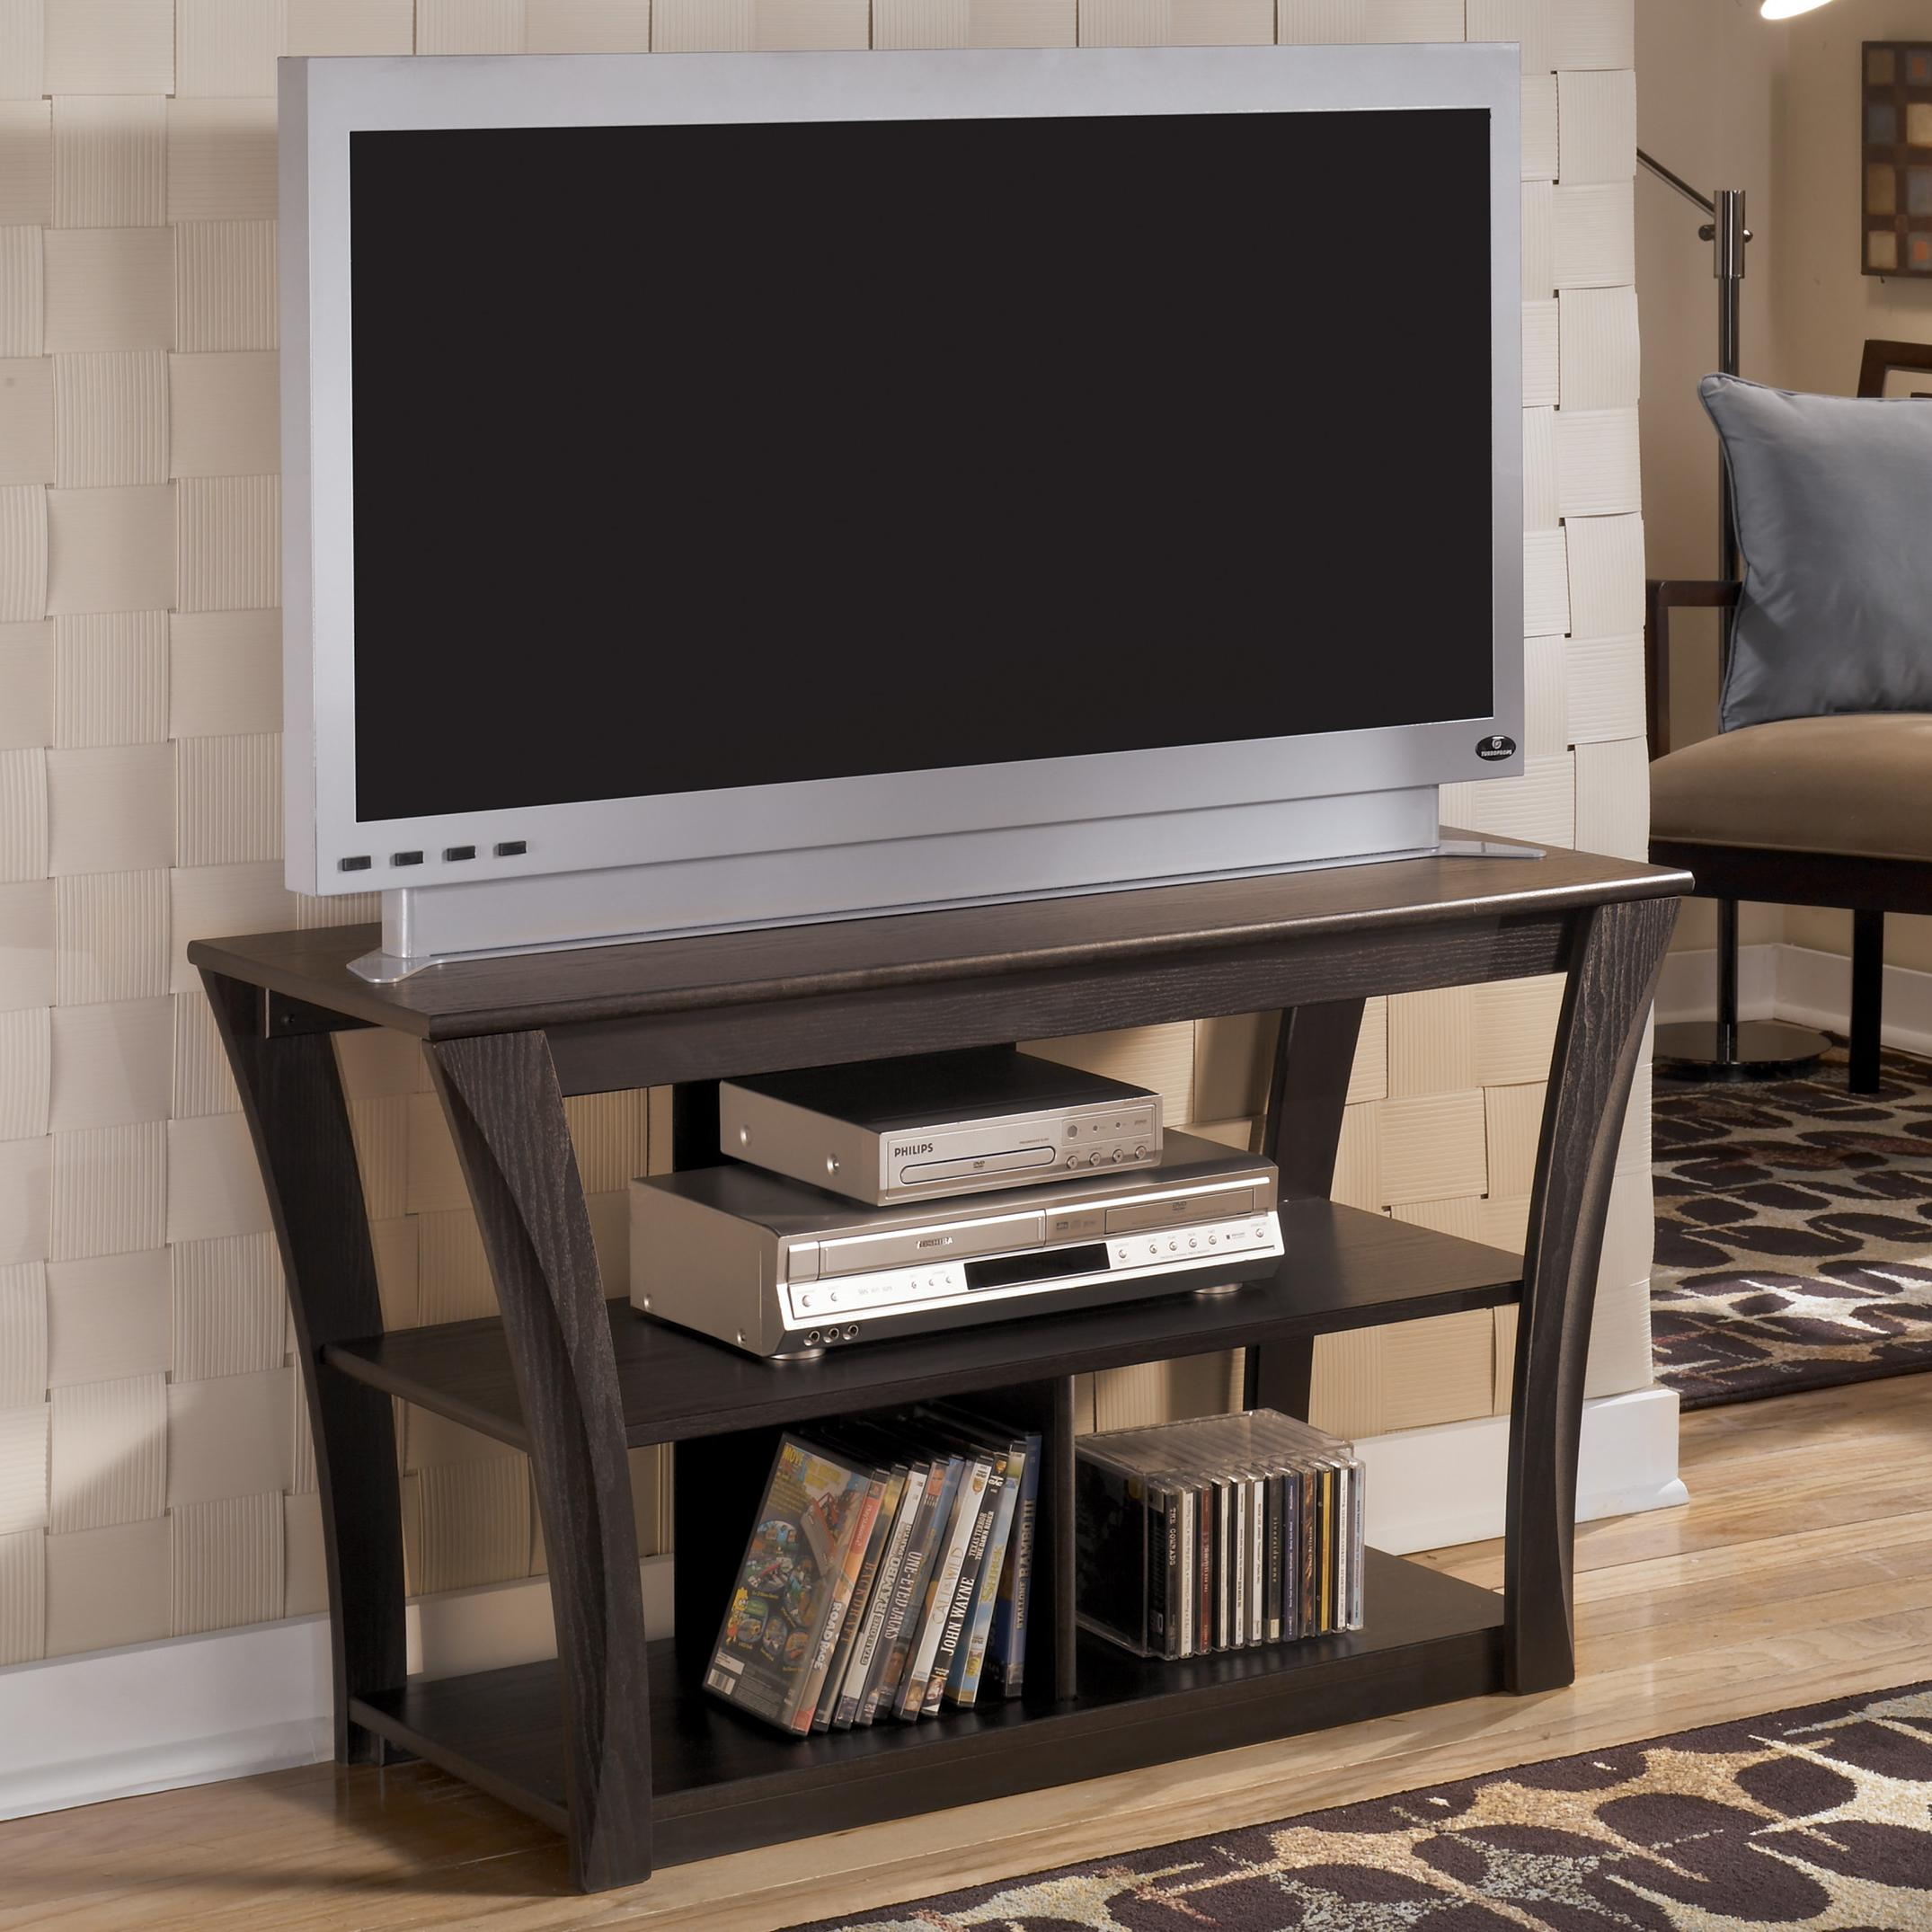 Signature Design by Ashley Ellenton TV Stand - Item Number: W276-10